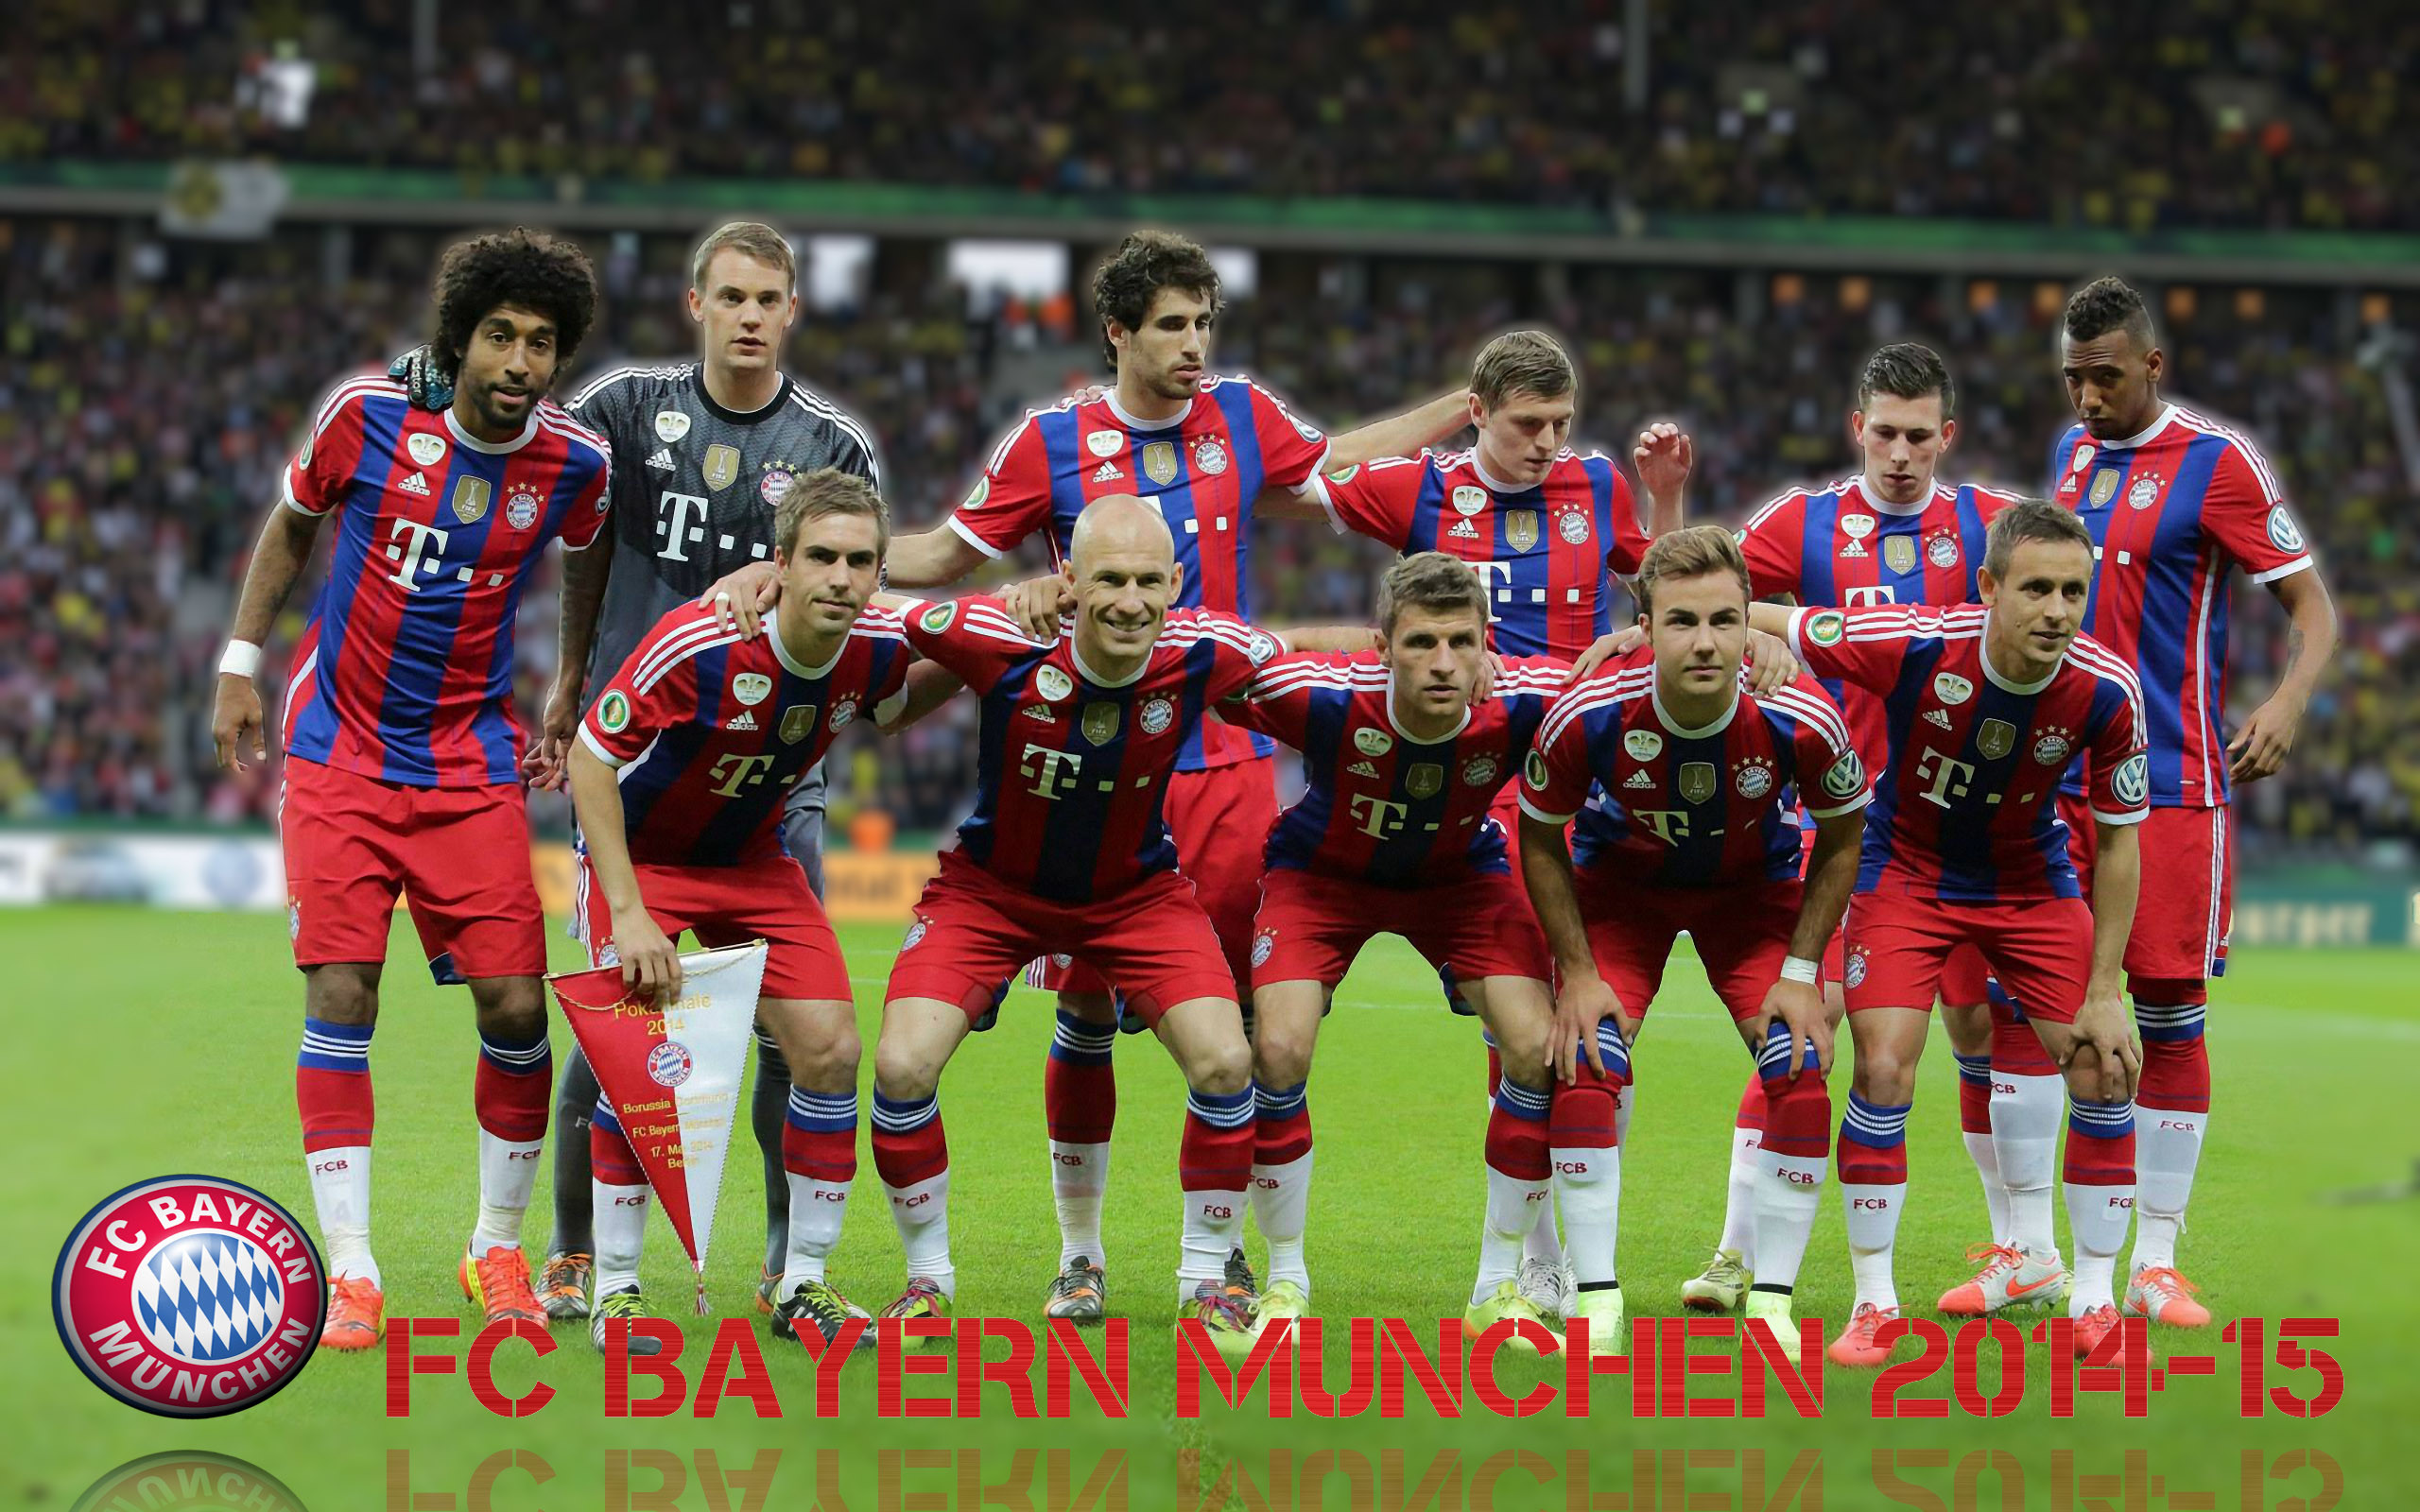 Germany can never forget that awesome era when this team Bayern Munich won  European cup in